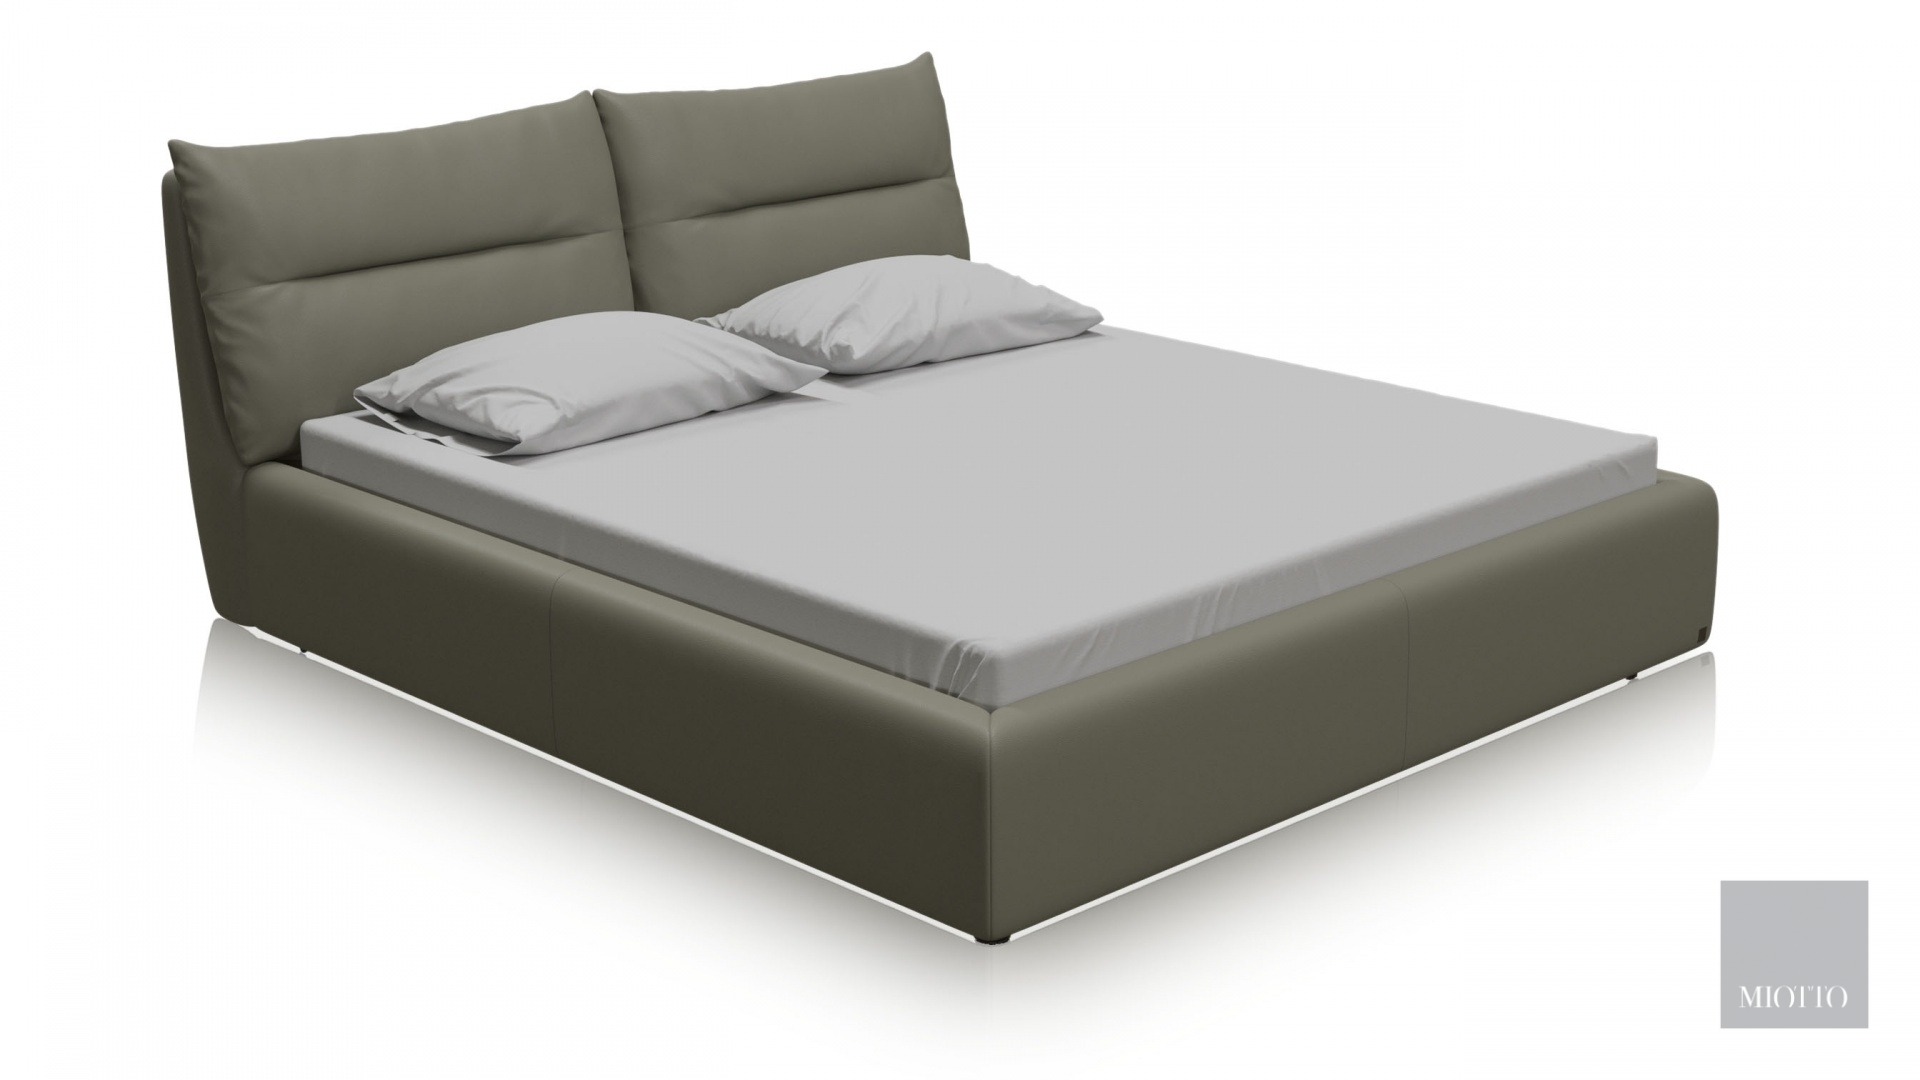 miotto_marga bed